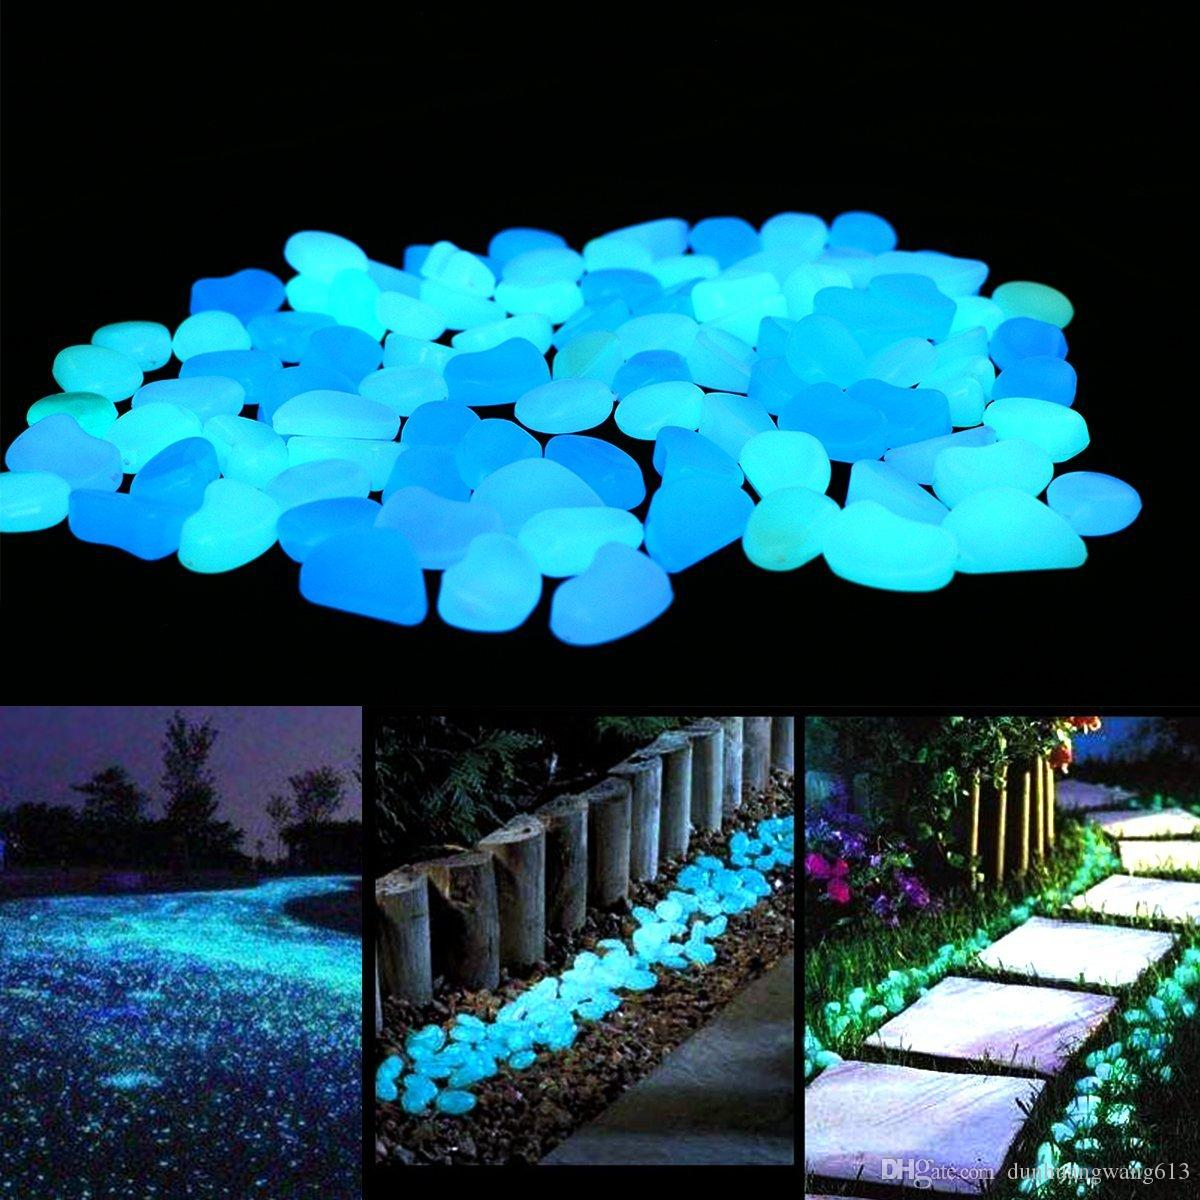 Glow in the Dark Garden Pietre Ciottoli per Decorazioni Cortile e Passerelle, Pietre Luminose Decorative fai-da-te